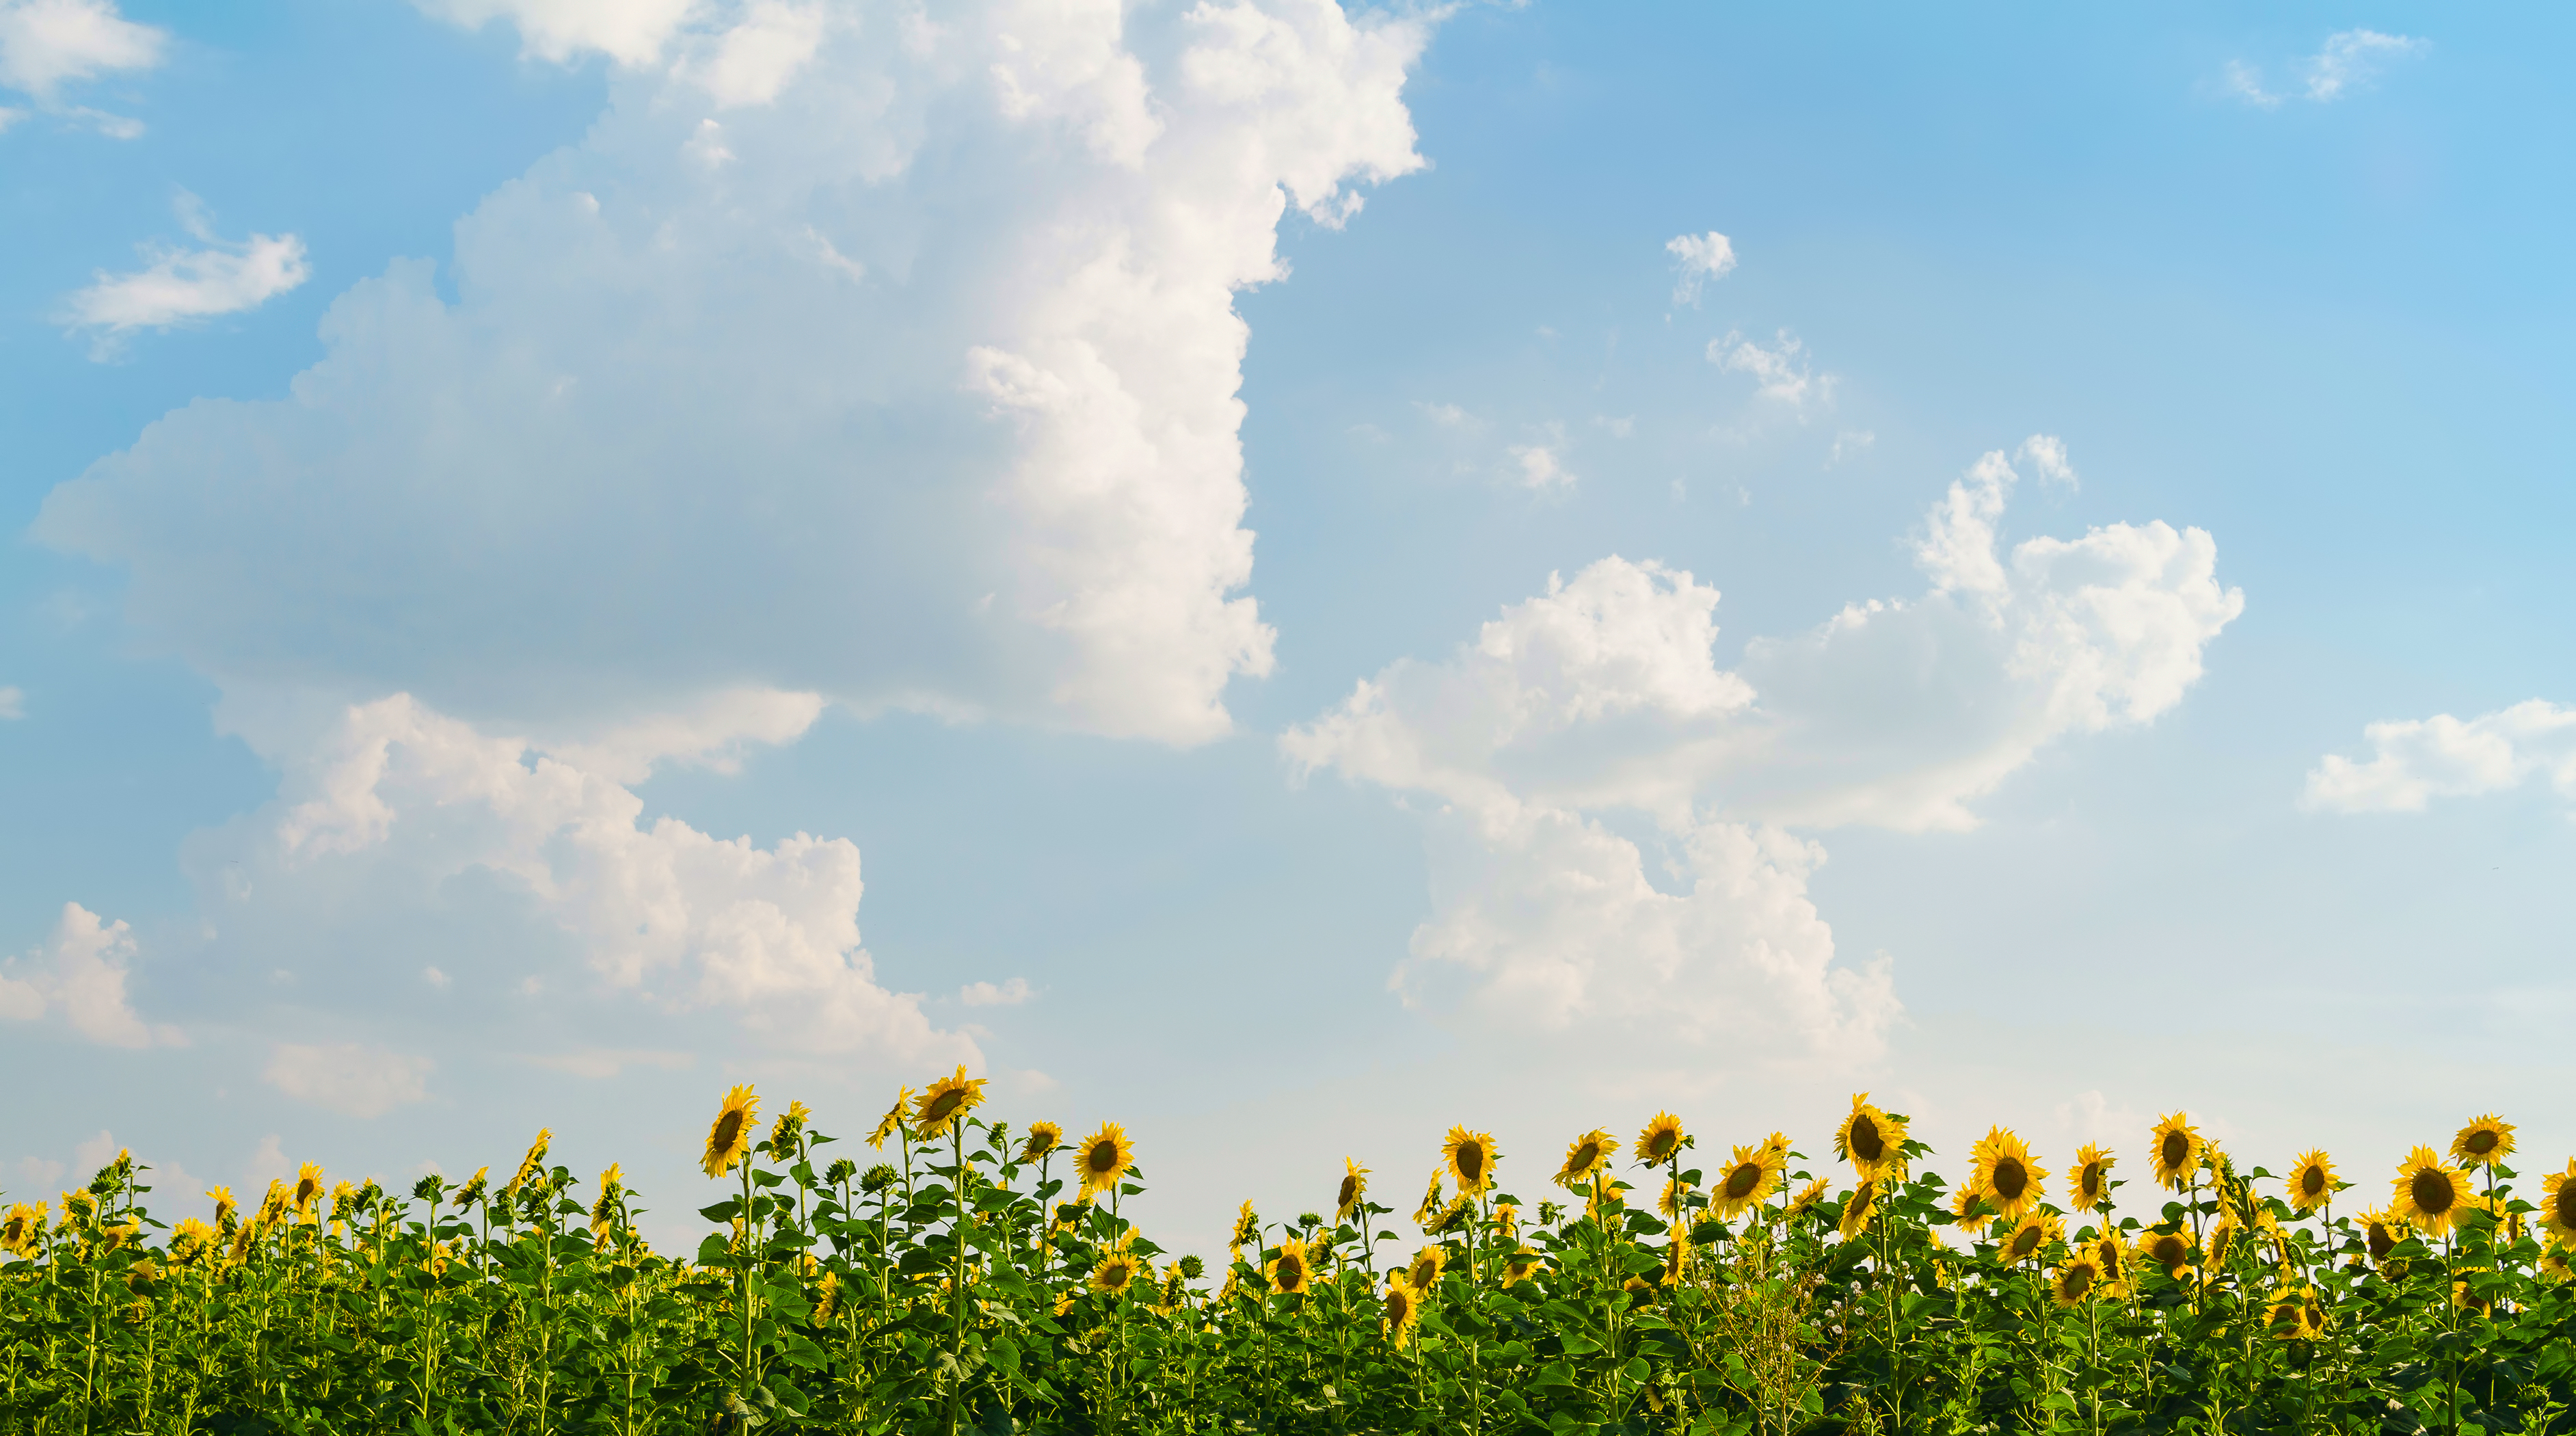 sunflower field on blue sky backgrounds